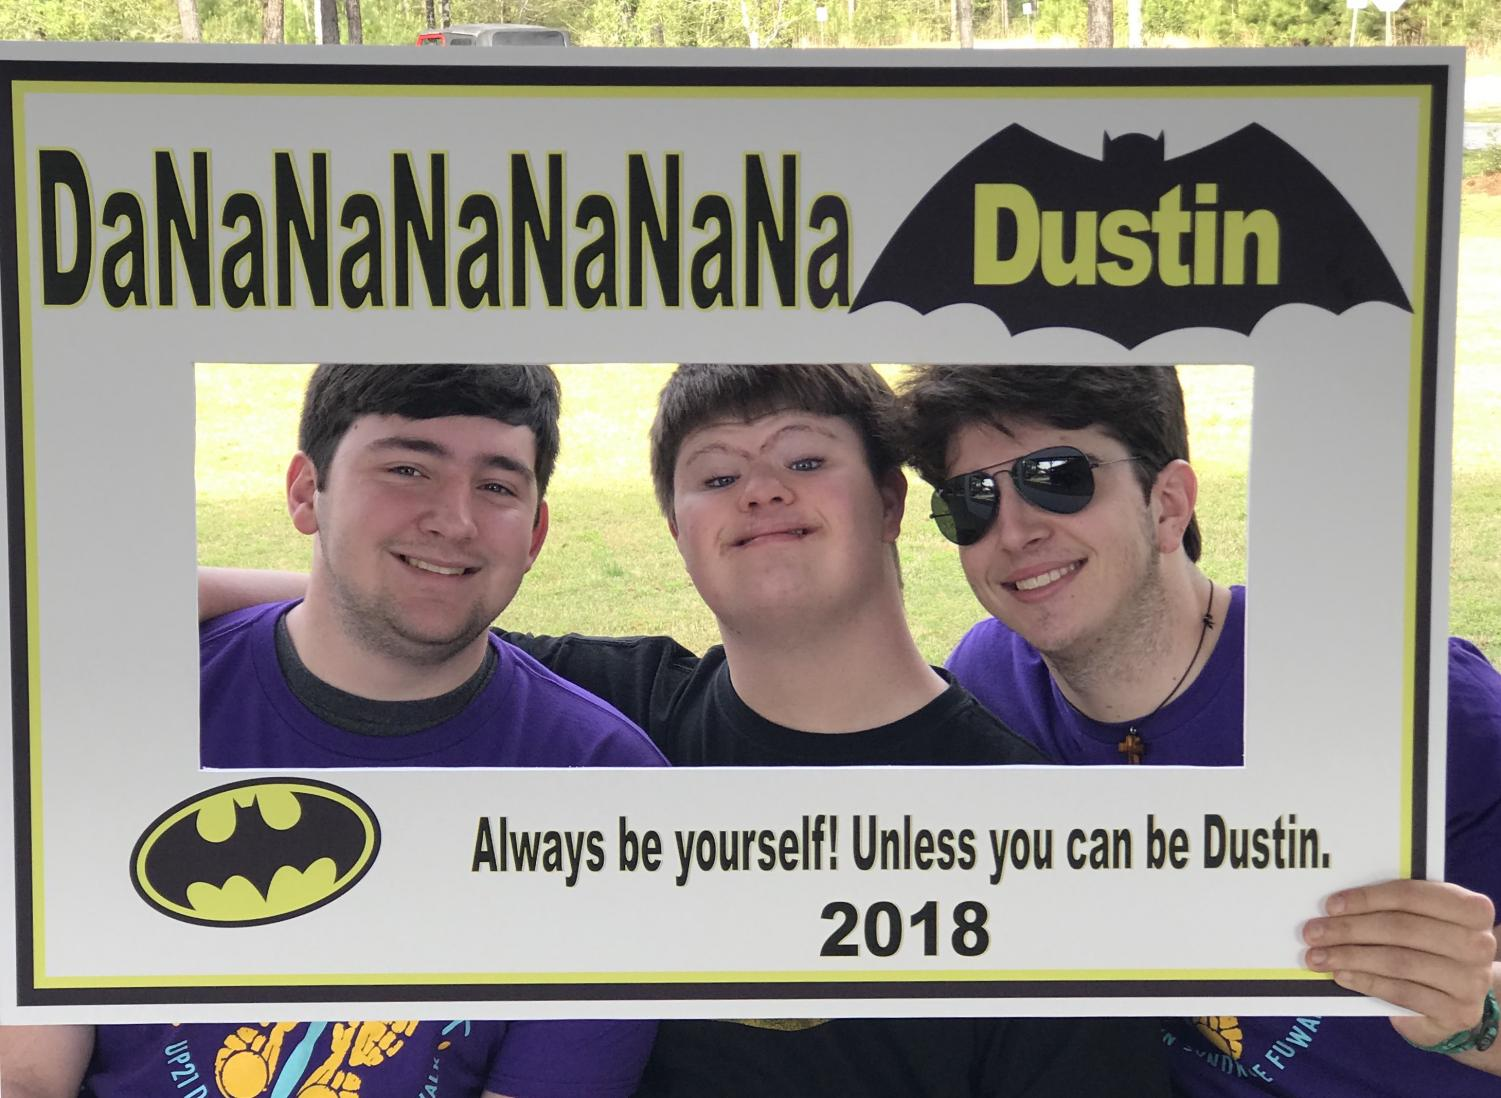 Senior Taylor Bourgeois stands with his cousins Dustin Gary (middle) and Cameron Gary (right) at the Up 21 Down Syndrome Awareness Walk on Saturday, March 24.